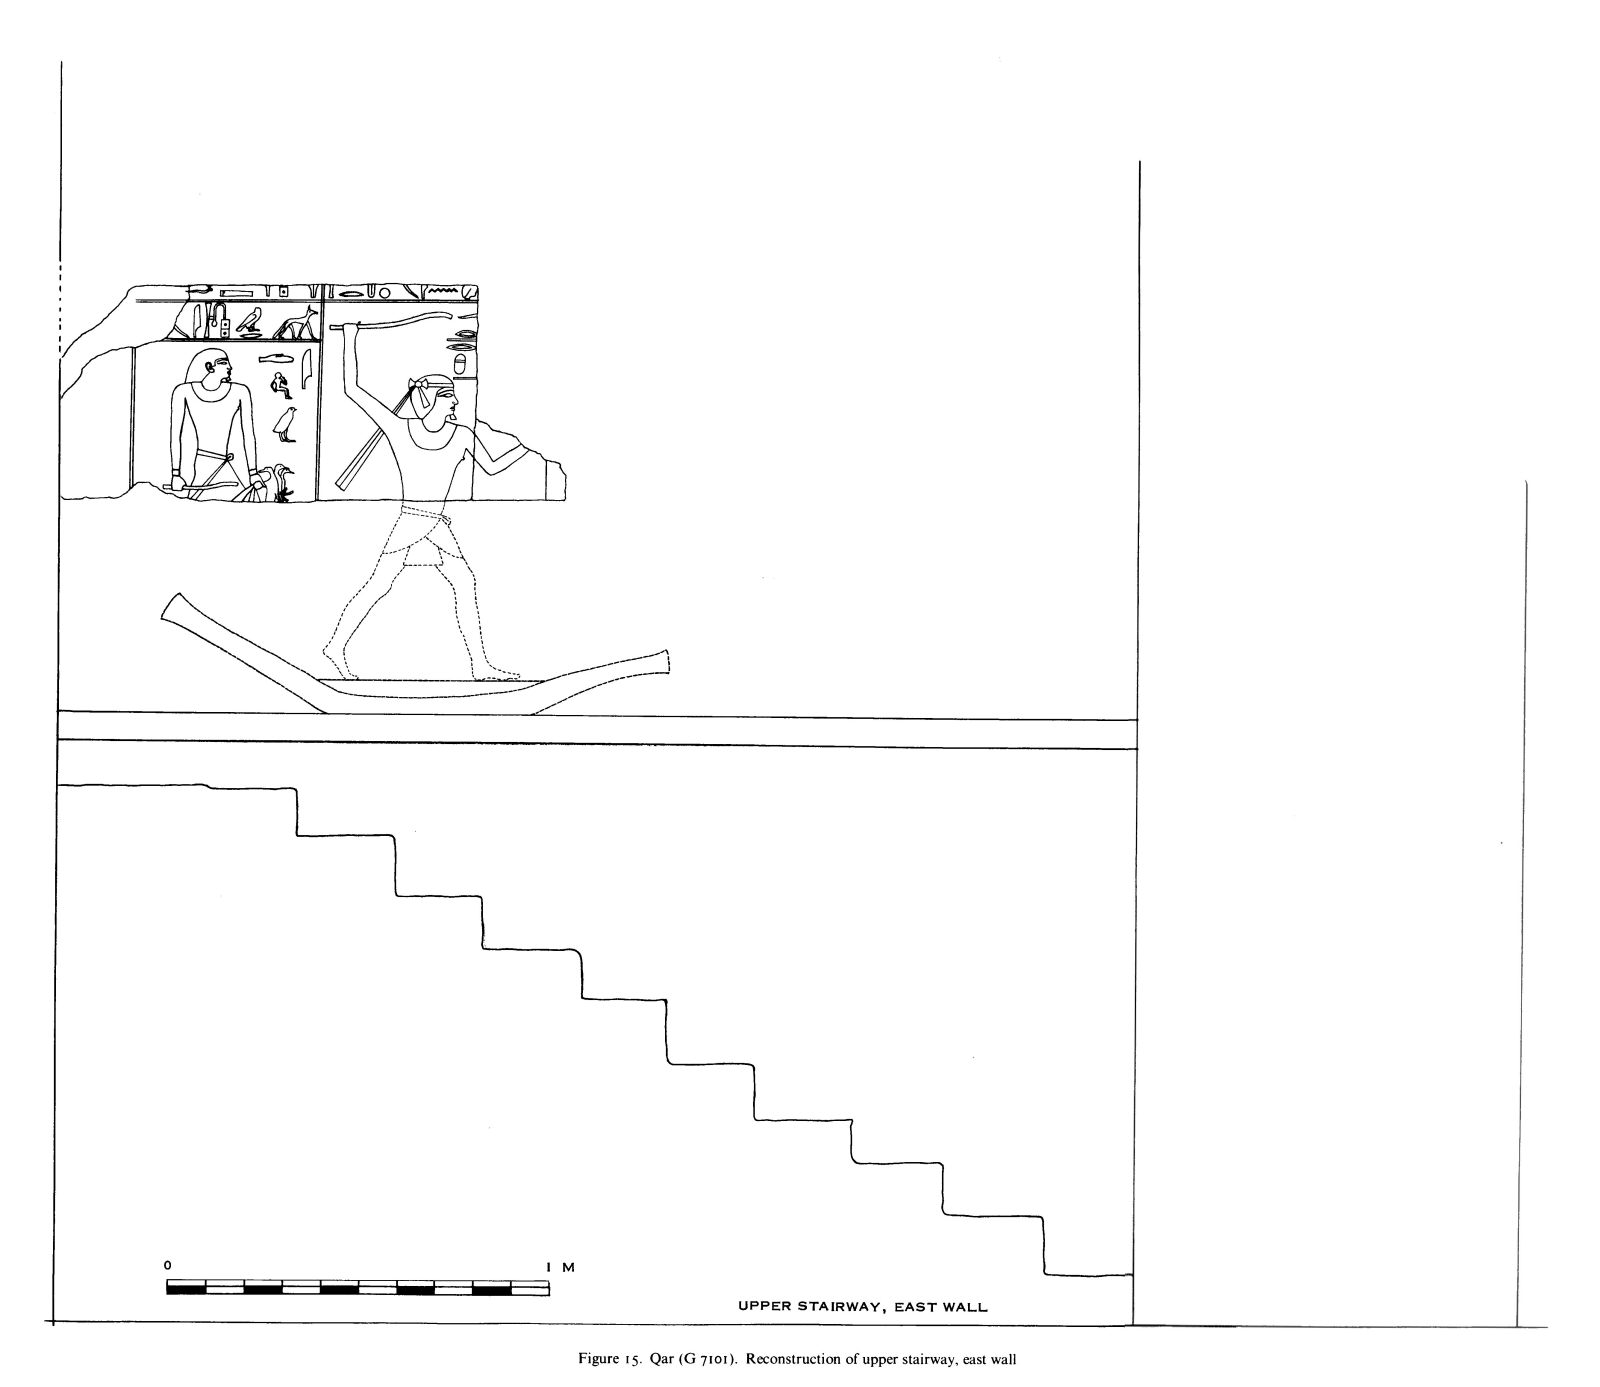 Drawings: G 7101, Elevation of upper stairway, E wall, reconstruction